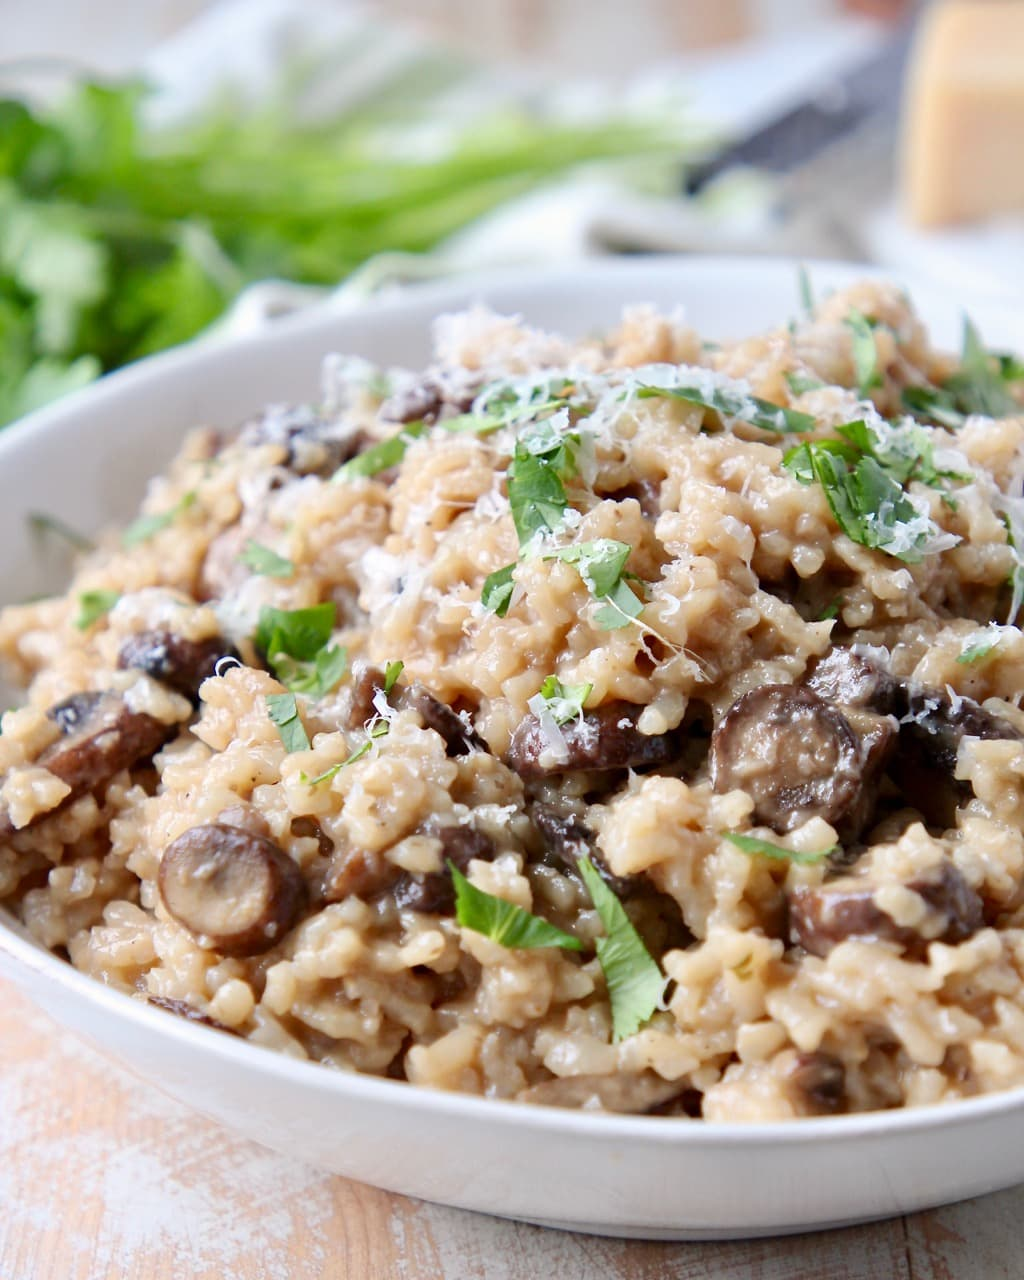 Instant pot mushroom risotto in bowl with fresh parsley and parmesan cheese